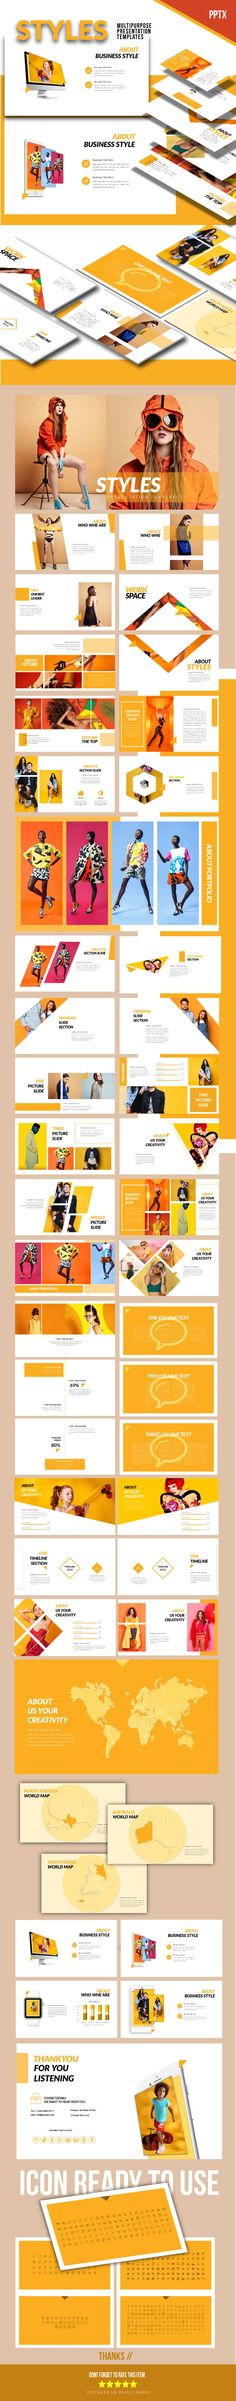 The Styles - Presentation Templates - #PowerPoint Templates #Presentation #Templates